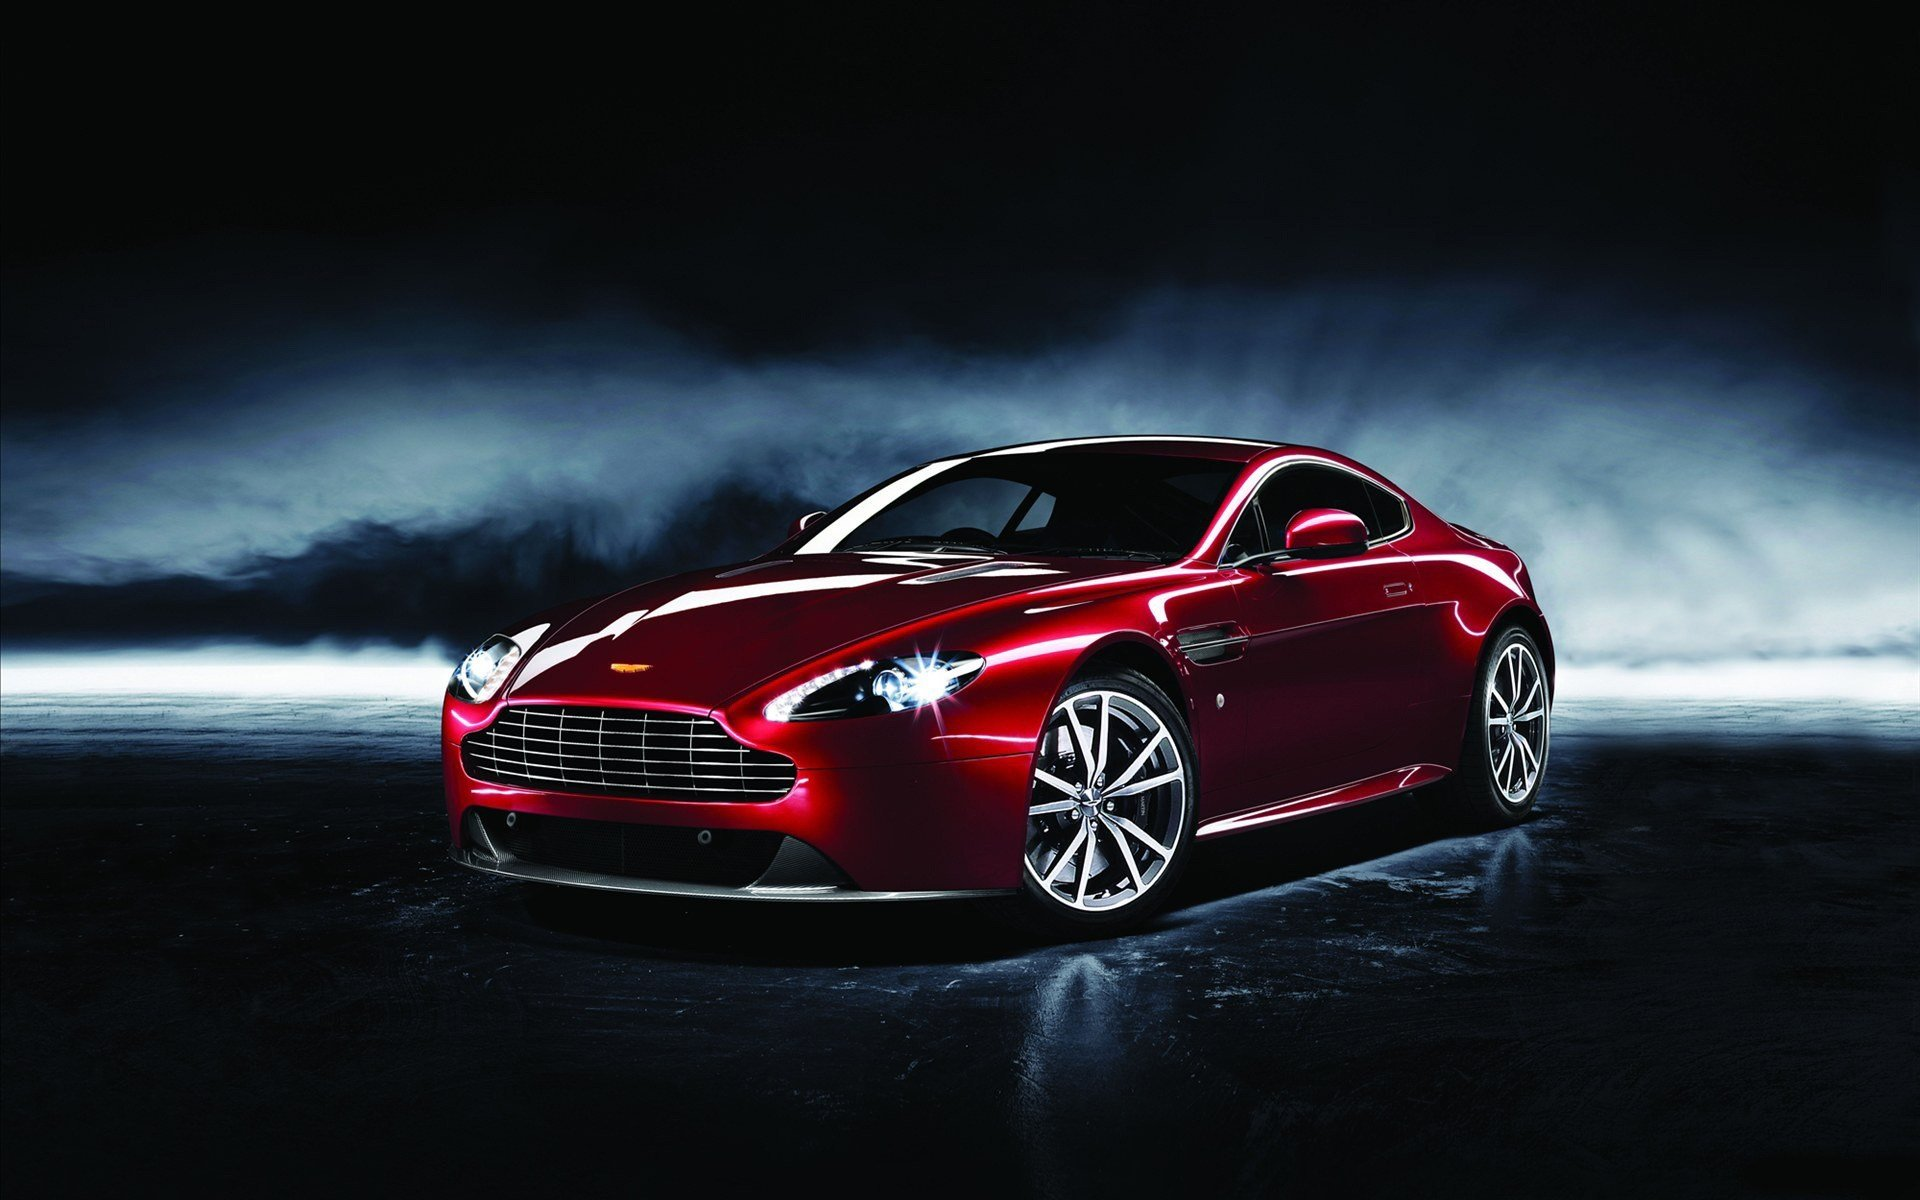 Latest Aston Martin Dragon 88 Limited Edition Wallpaper Hd Car Free Download